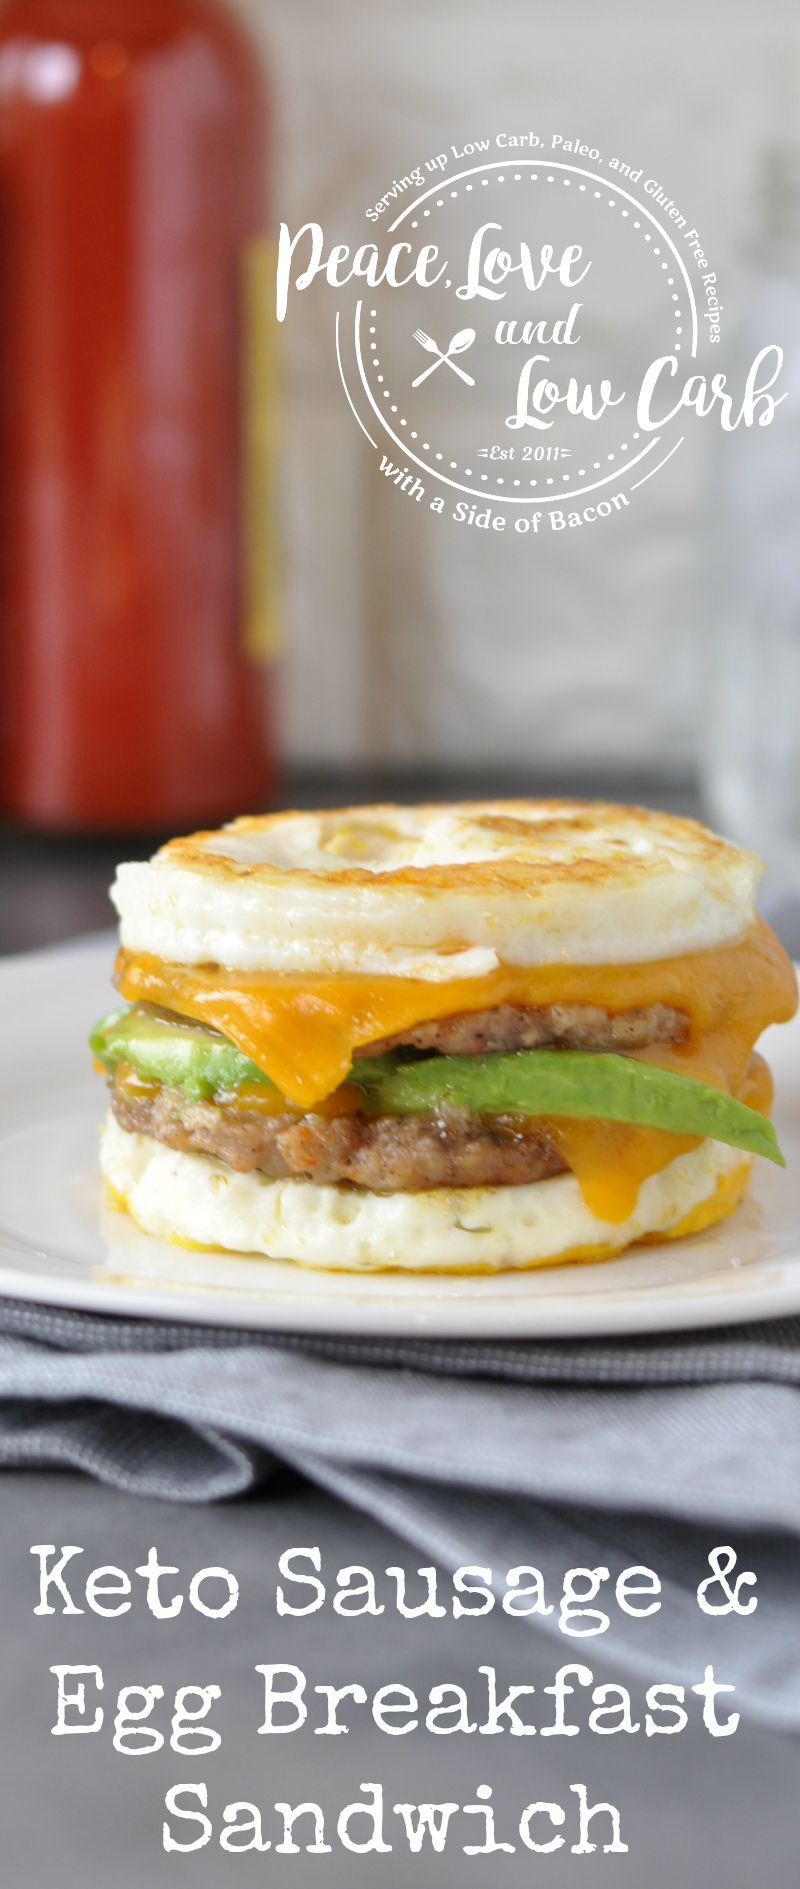 19 Inspirational Calories In A Mcgriddle with Egg Sausage and Cheese